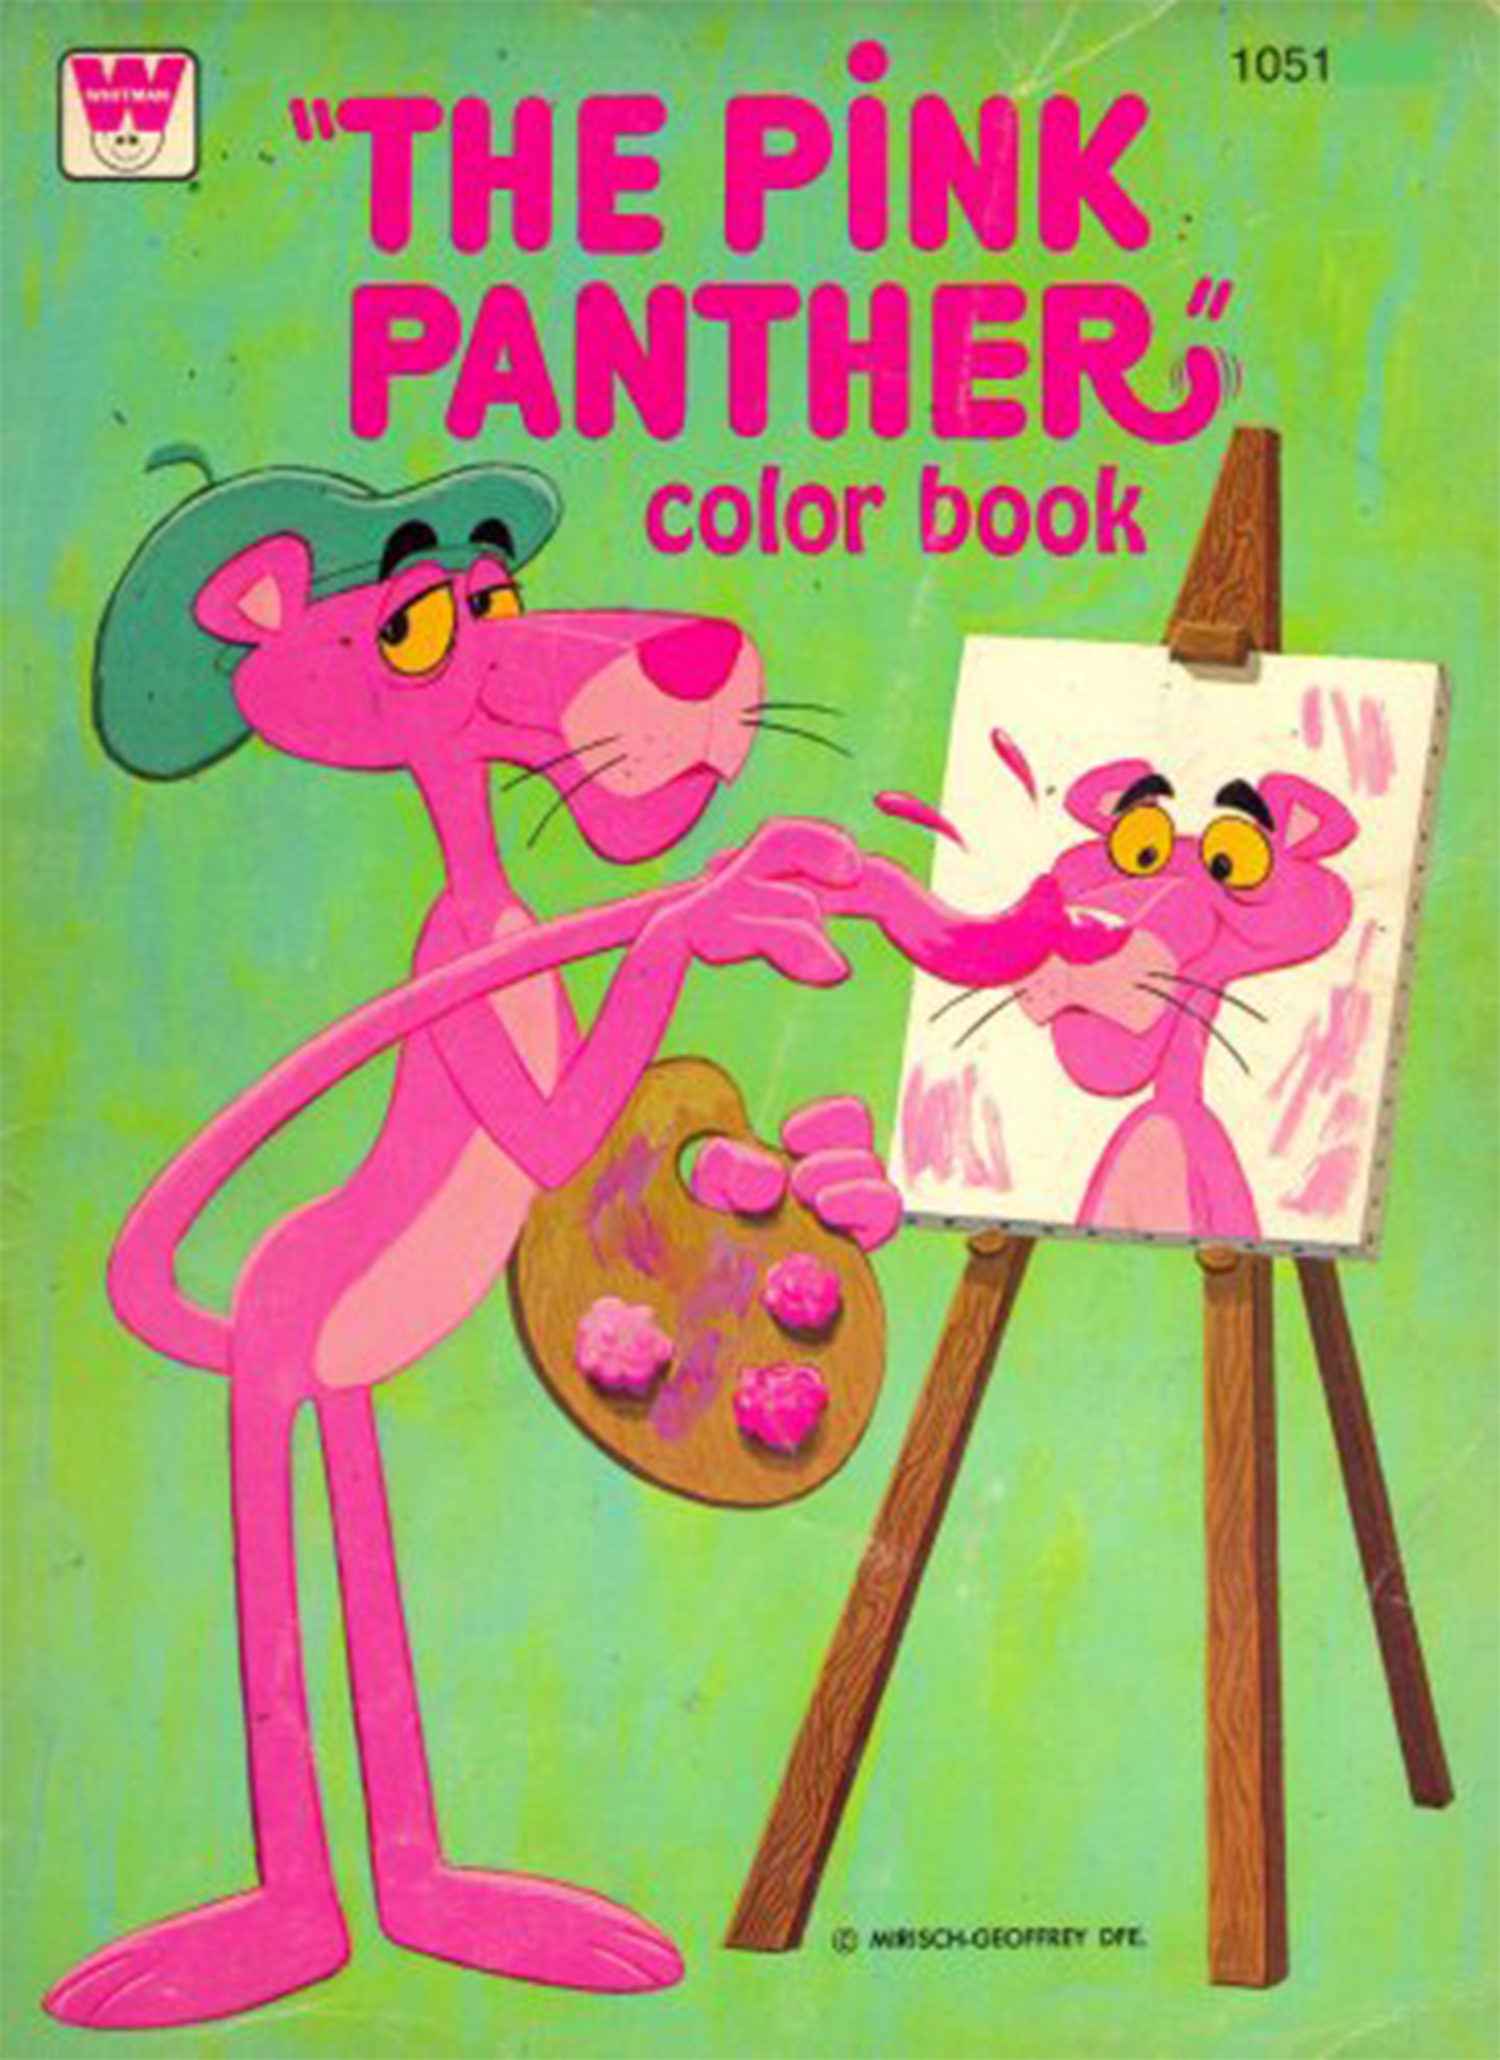 Whitman 1975 Color Book | The Pink Panther Wiki | FANDOM ...